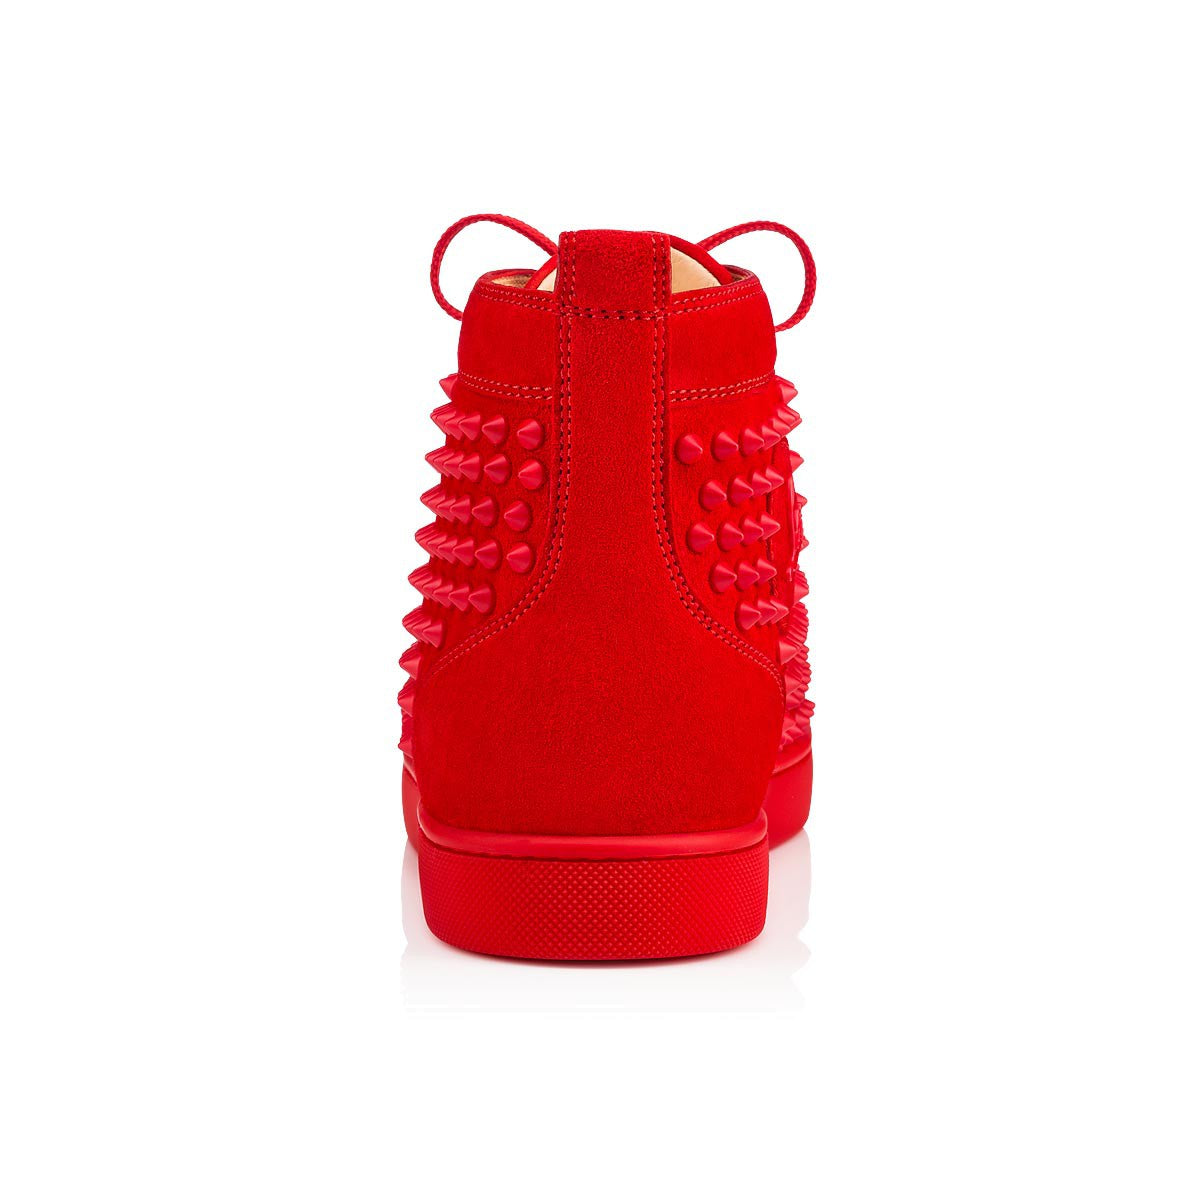 6adeb6639114 Red Suede High Top Louboutin Sneakers – Antigua fashion